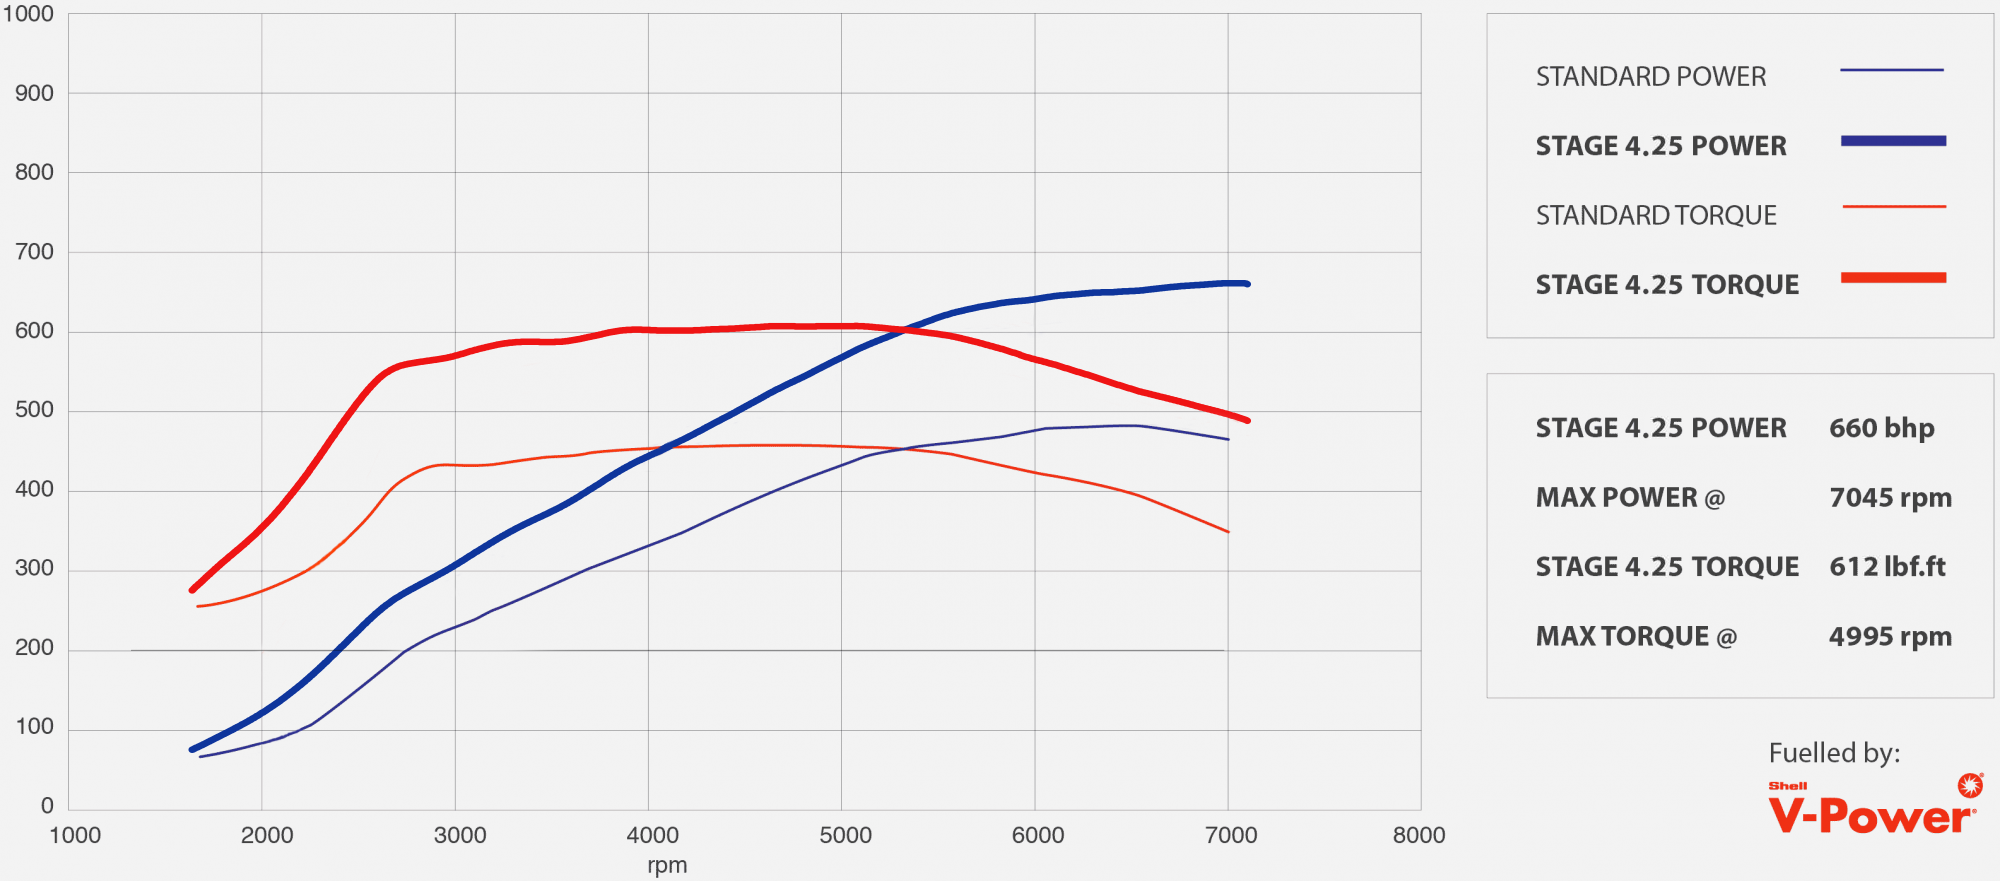 GTR tuning stage 4.25 power graph